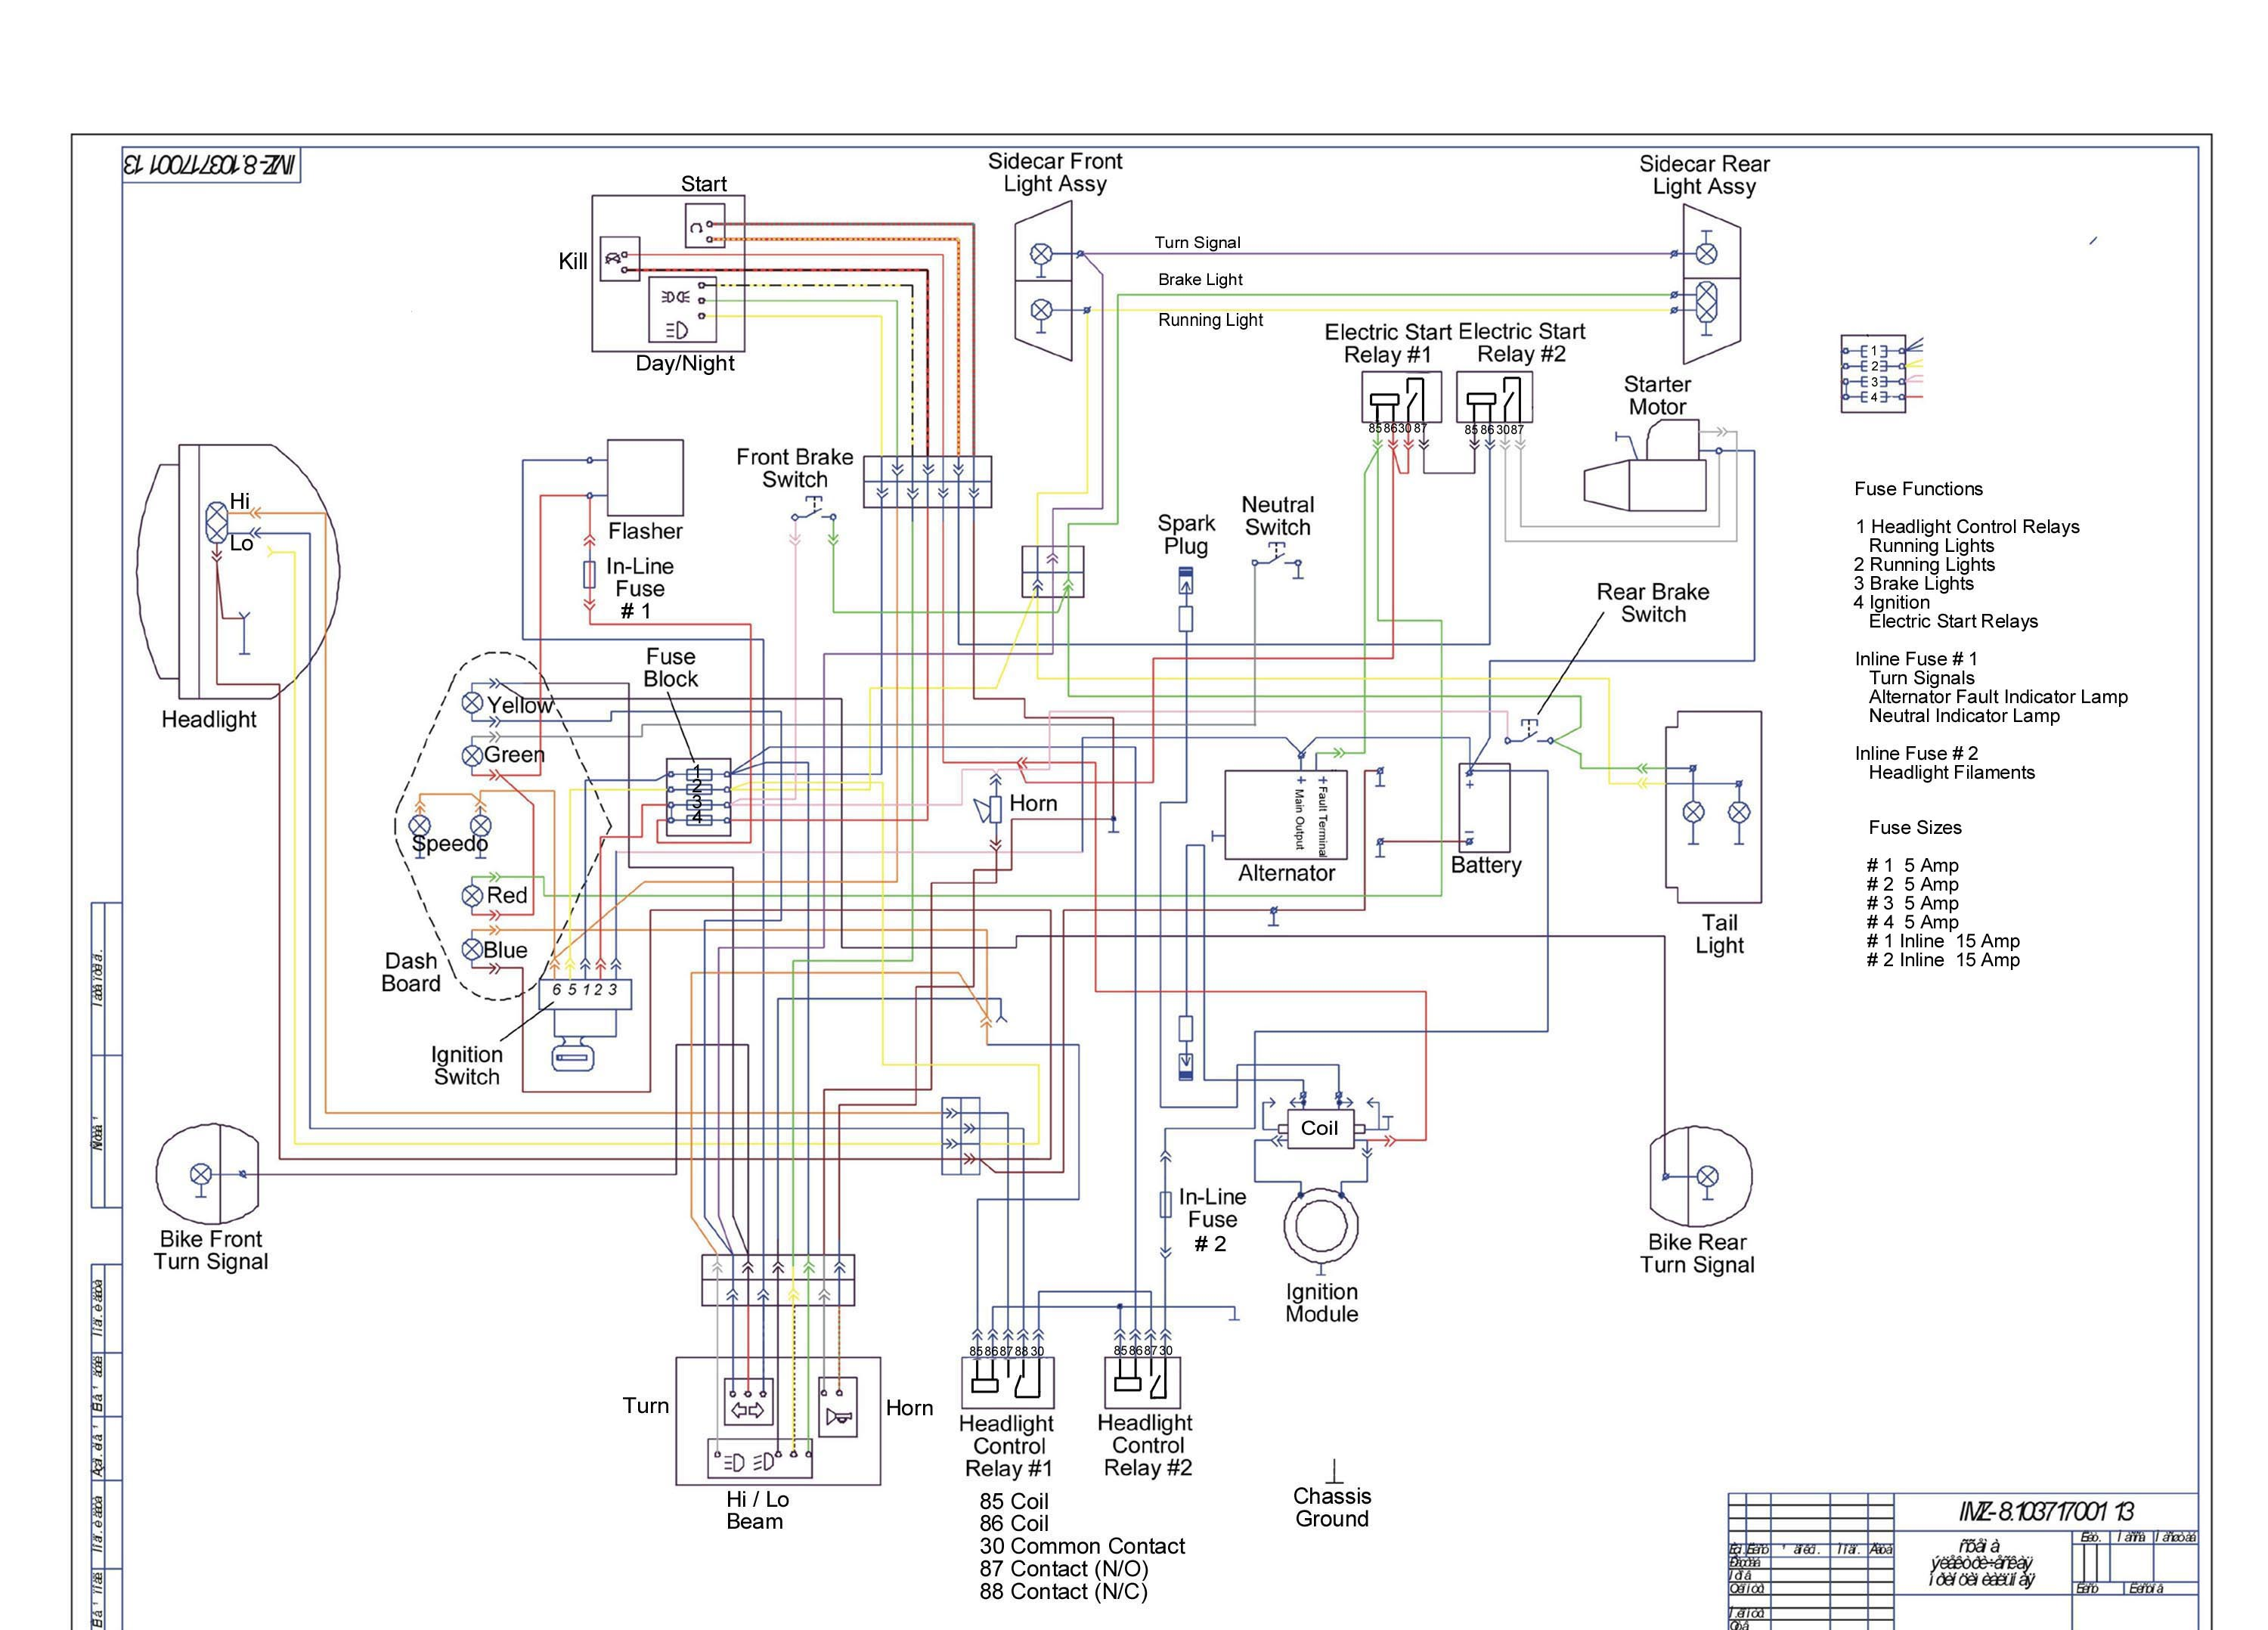 750Wiring diagrams royal enfield e start wiring diagram royal enfield royal enfield wiring diagrams at crackthecode.co